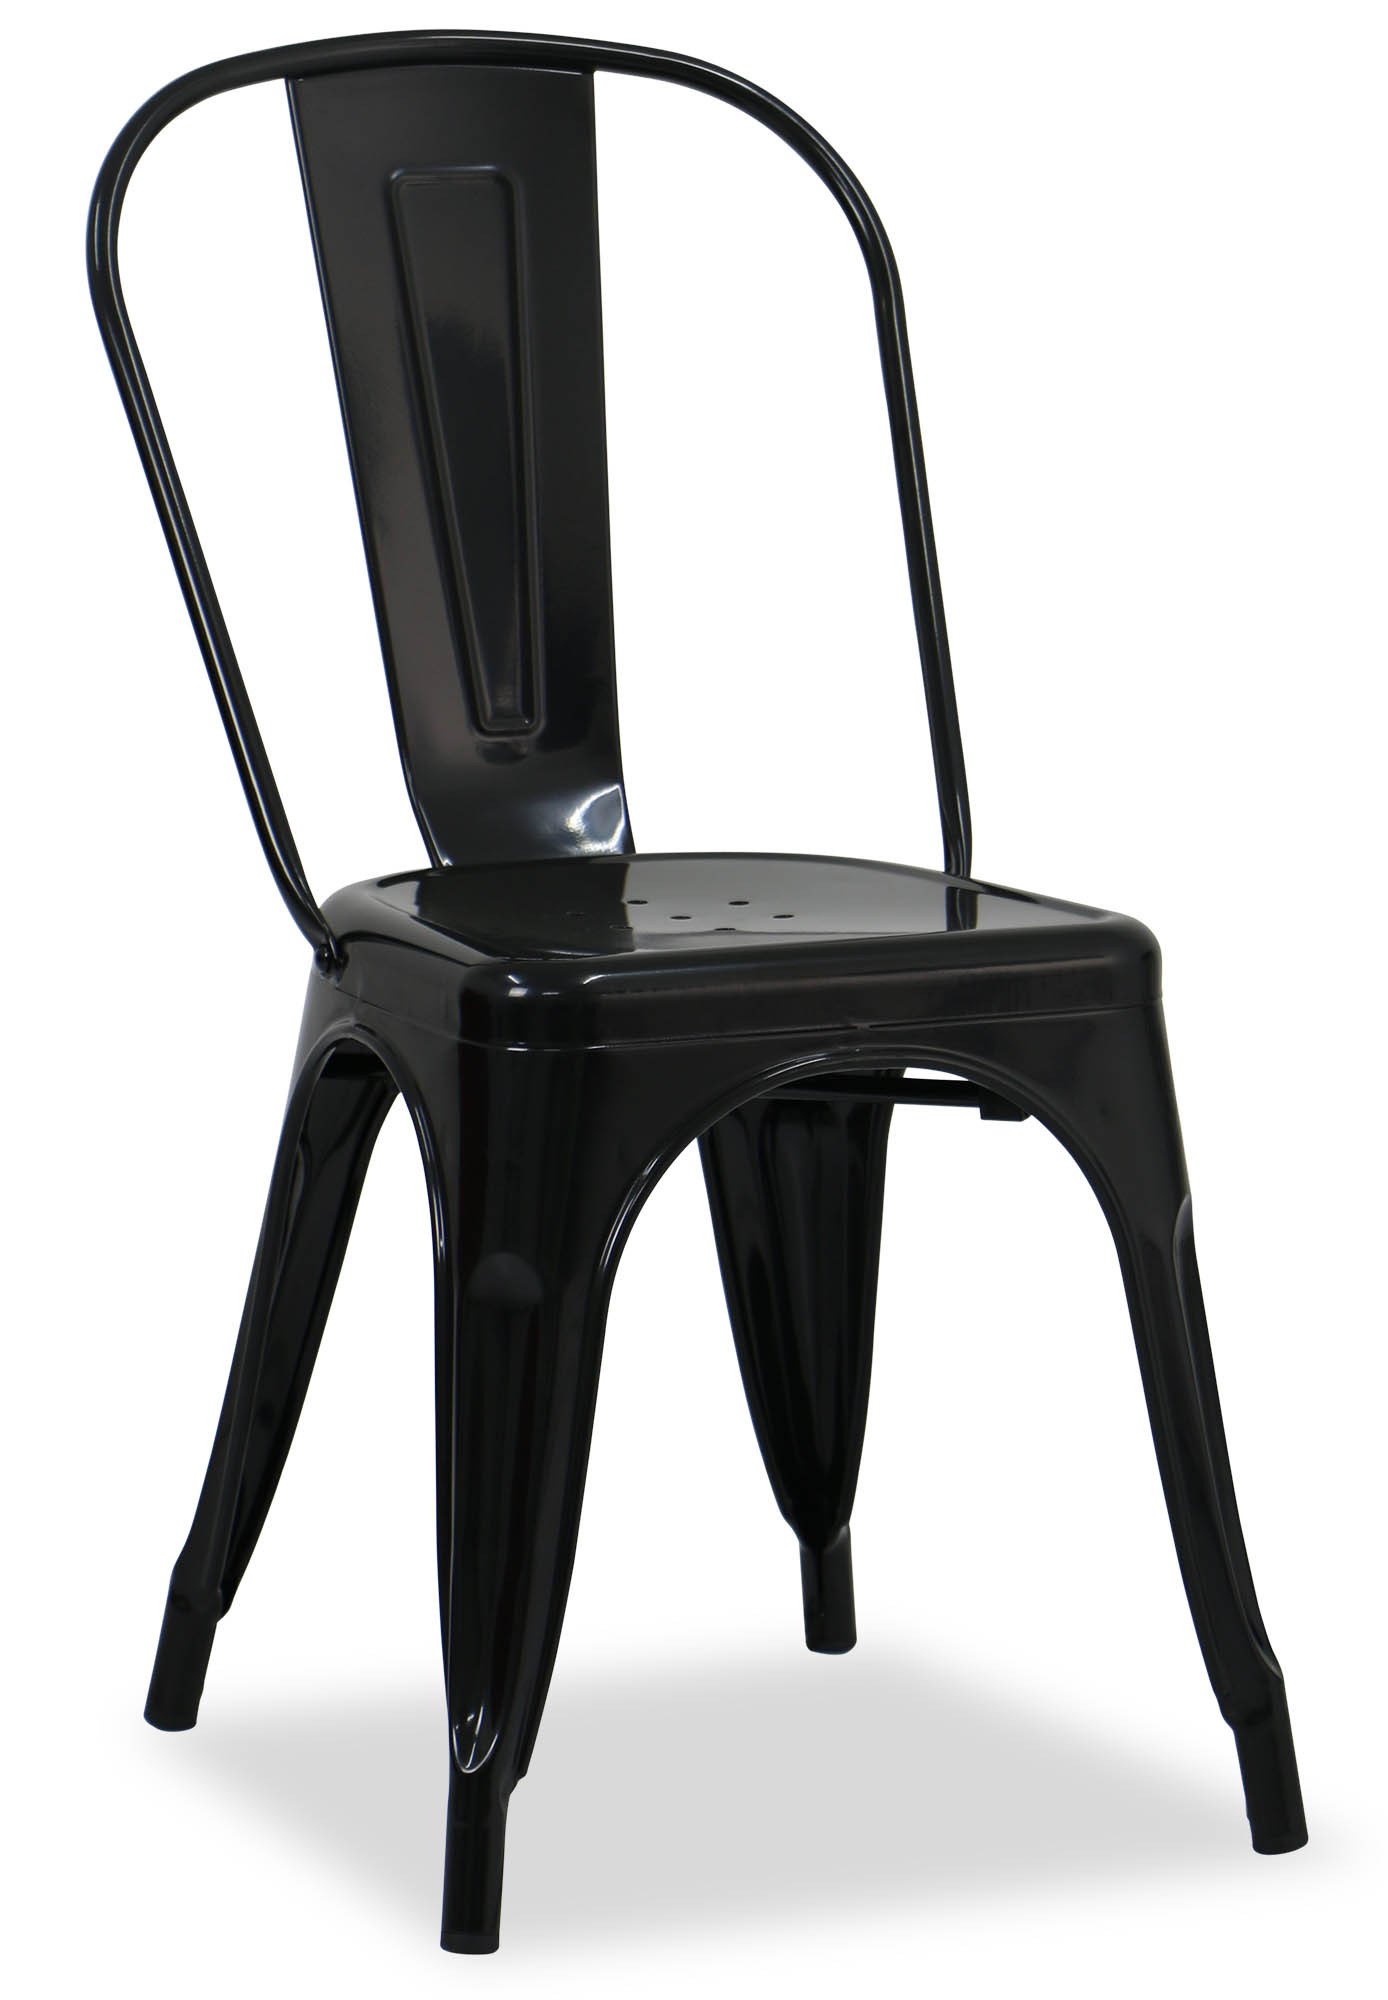 Retro Dining Chair Retro Metal Chair Black Dining Chairs Dining Room